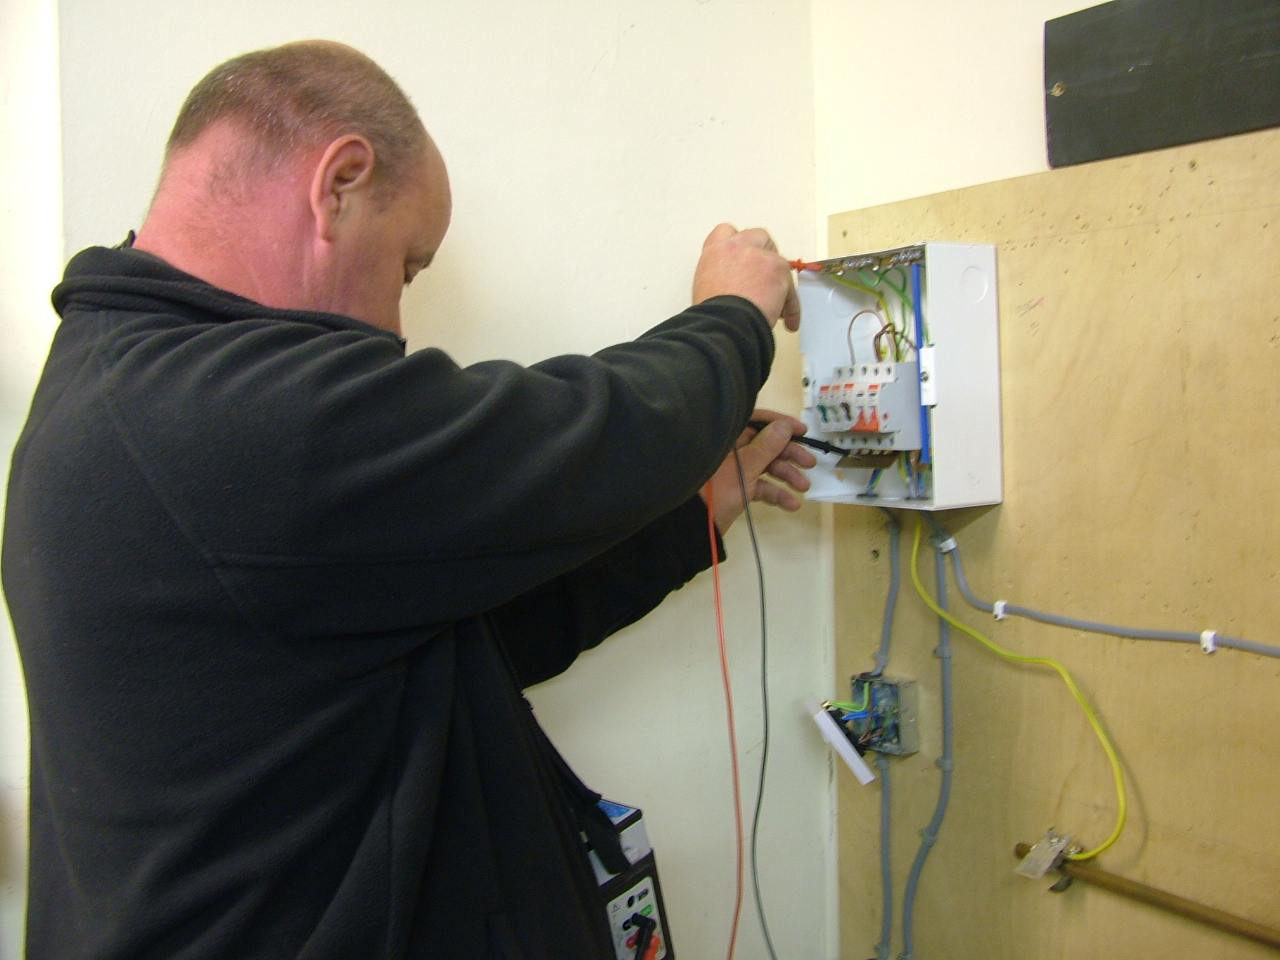 Foundation Electrical Course For Beginnersdiy Training Diy Wiring Uk The